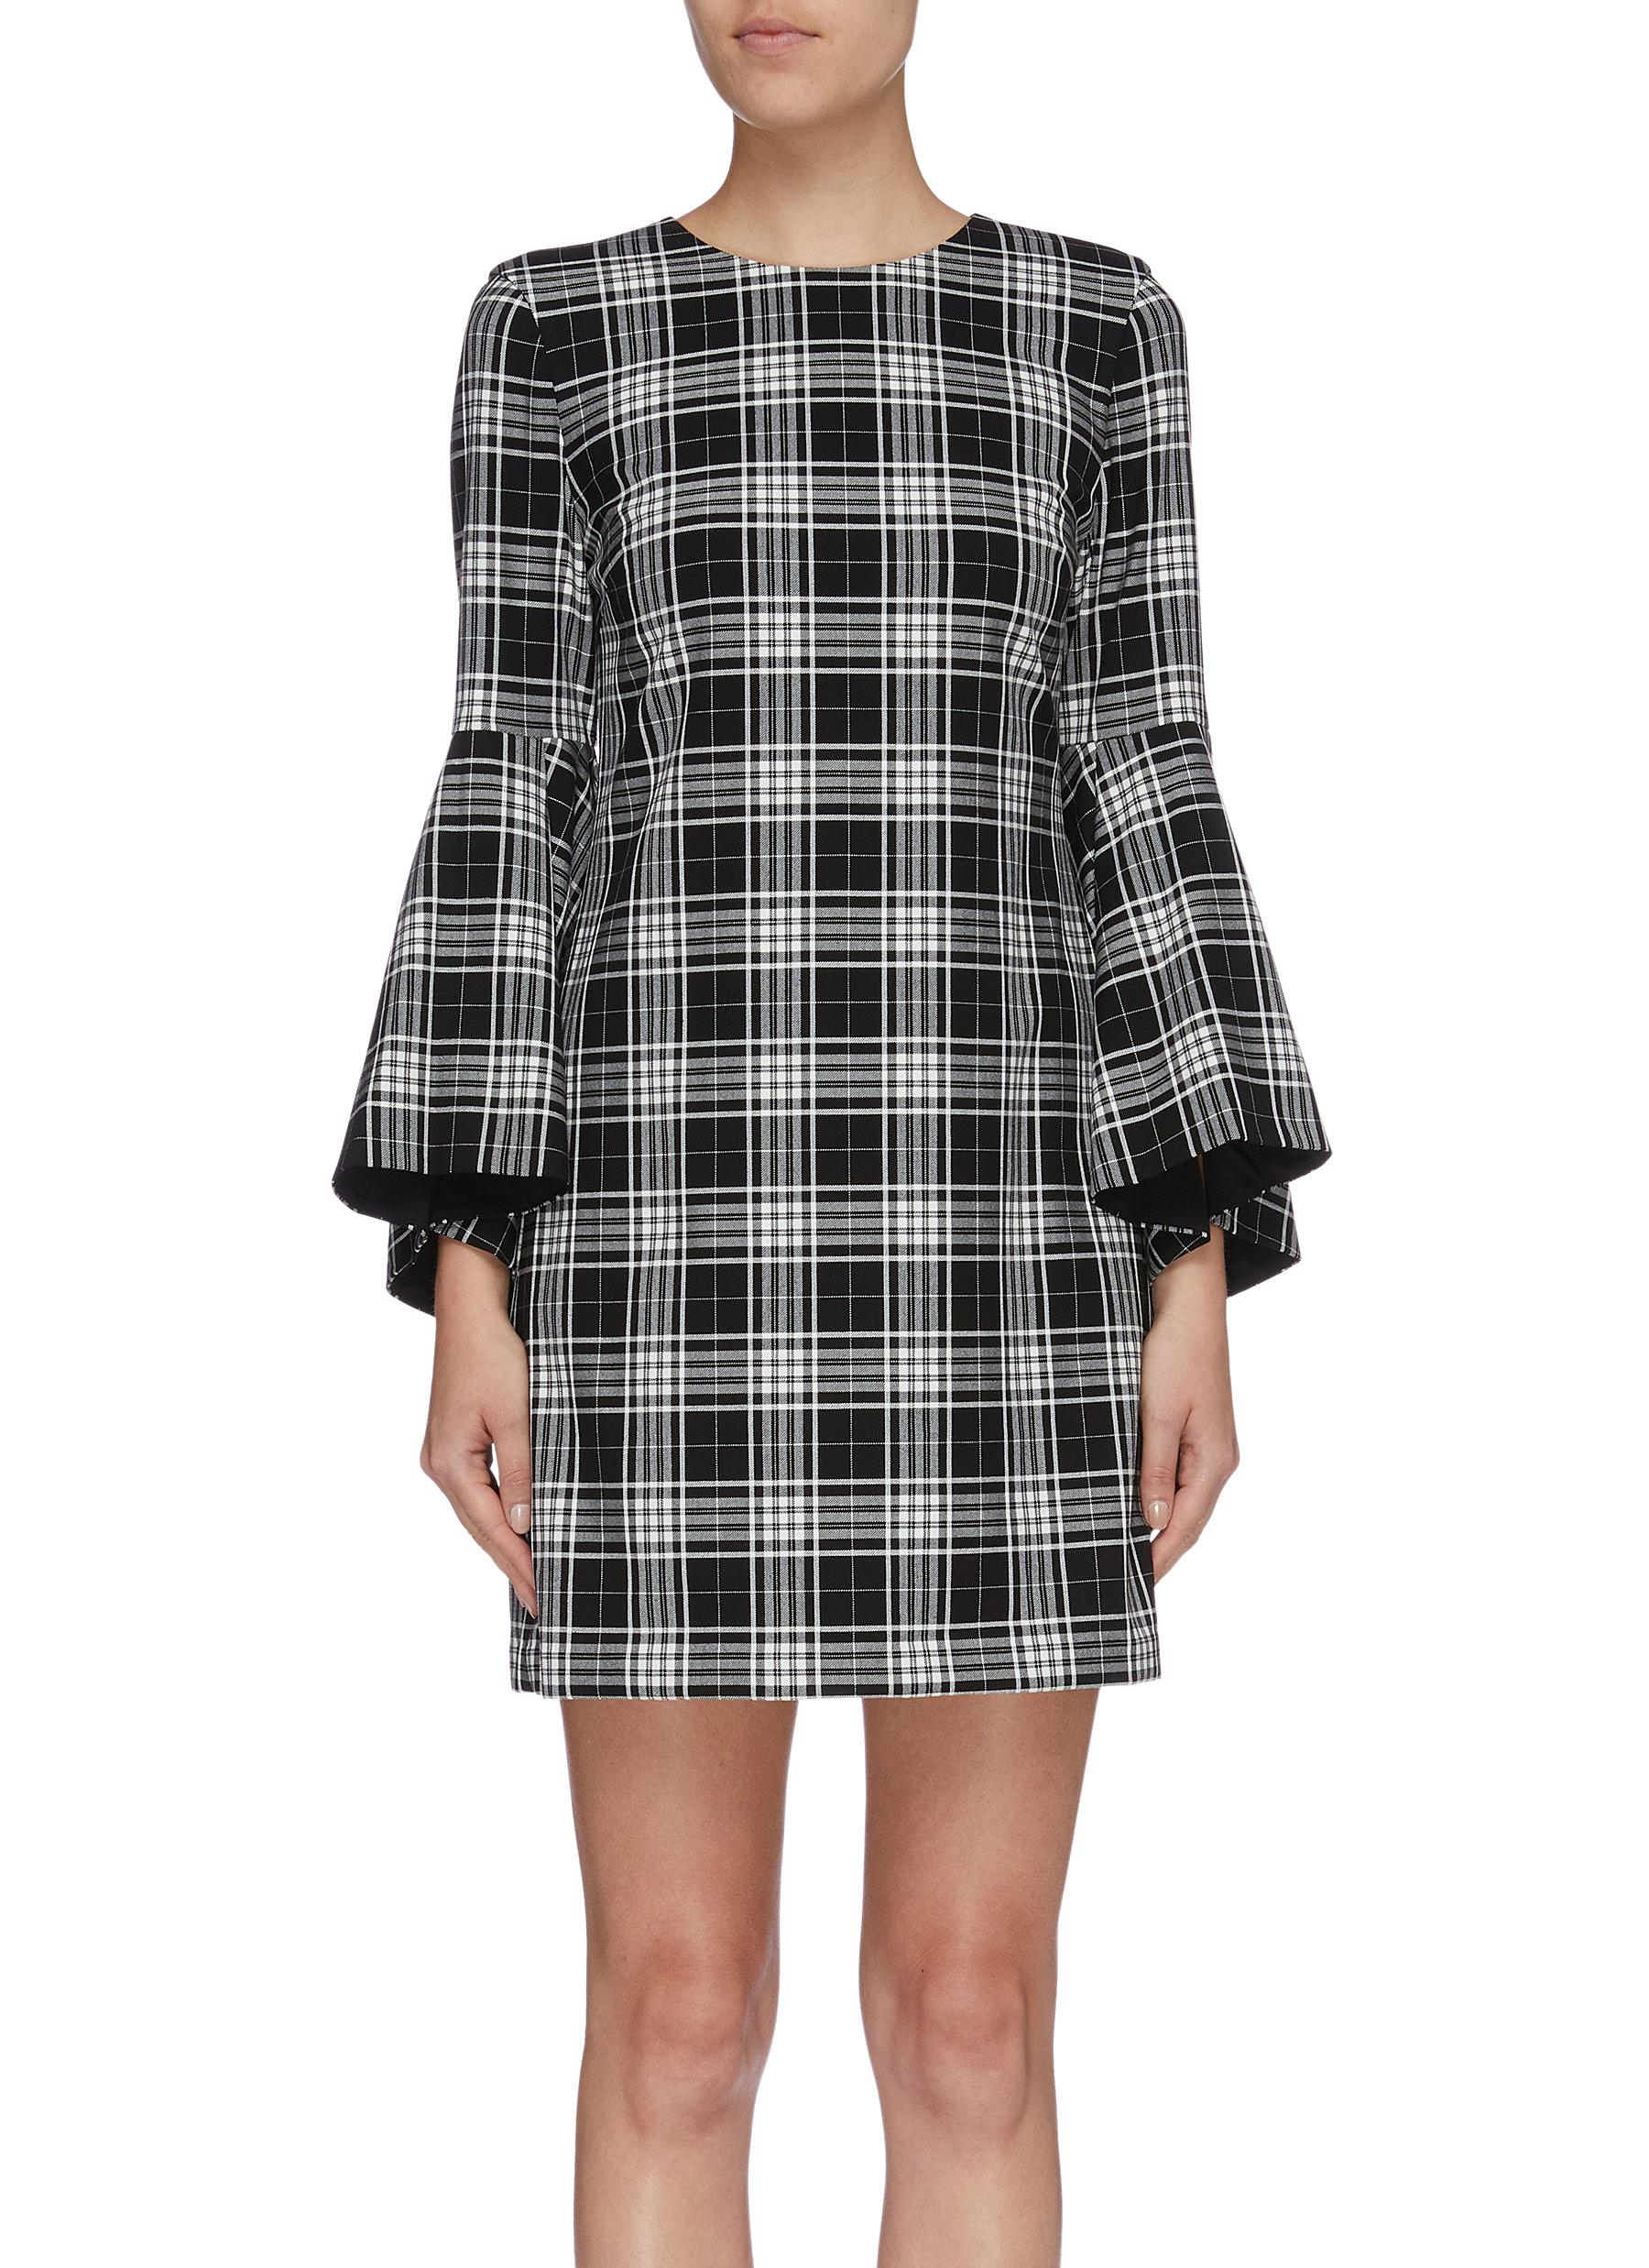 Thym trumpet sleeve check plaid dress by Alice + Olivia